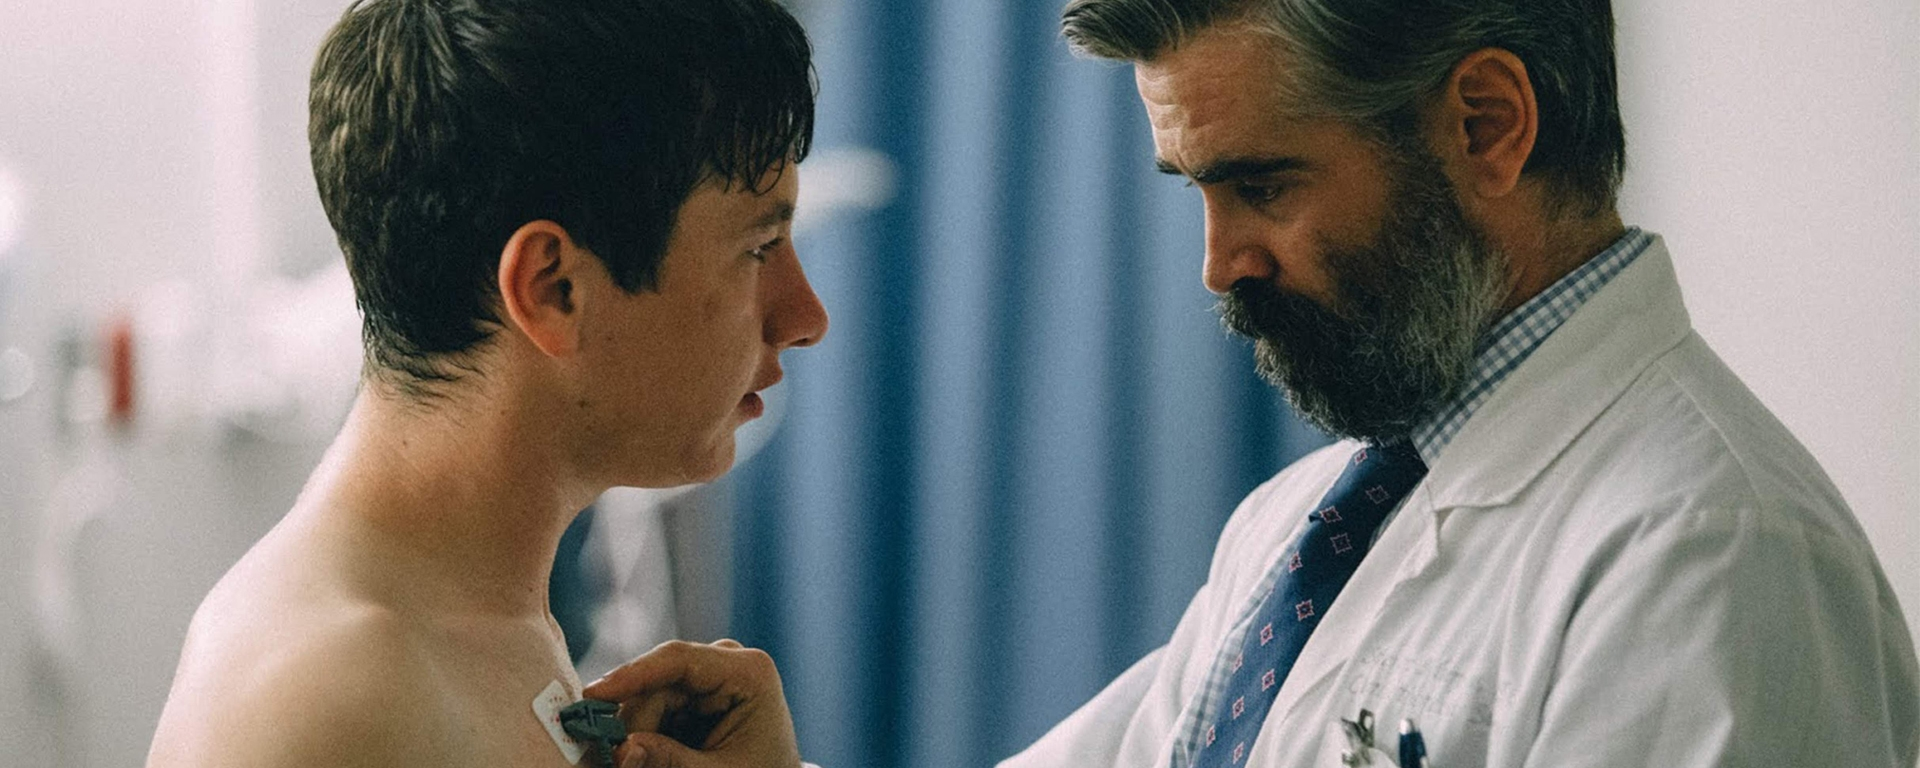 32. Griechische Filmwoche – »The Killing of a Sacred Deer«